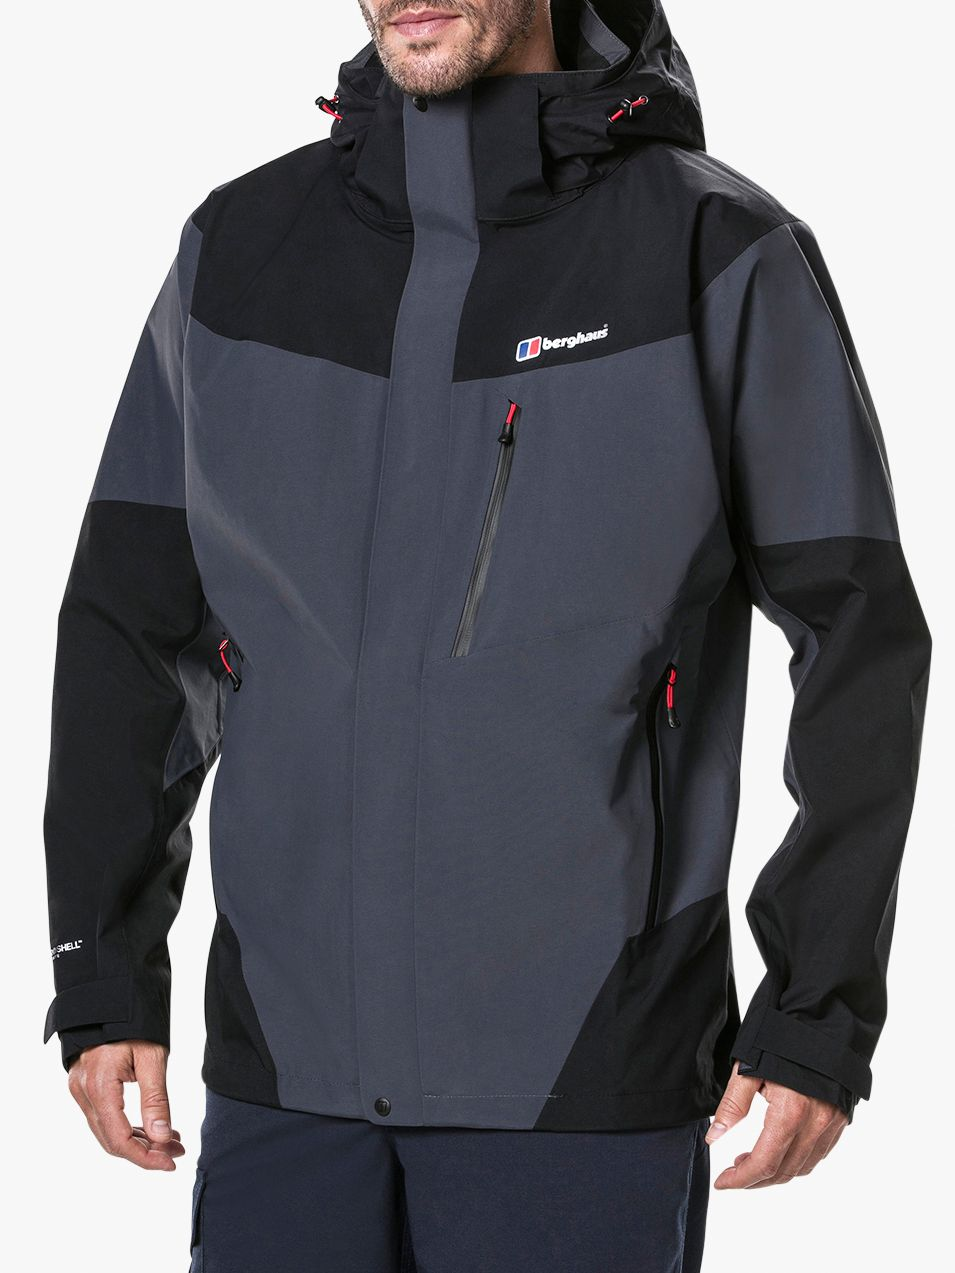 Berghaus Berghaus Arran Hydroshell Waterproof Men's Jacket